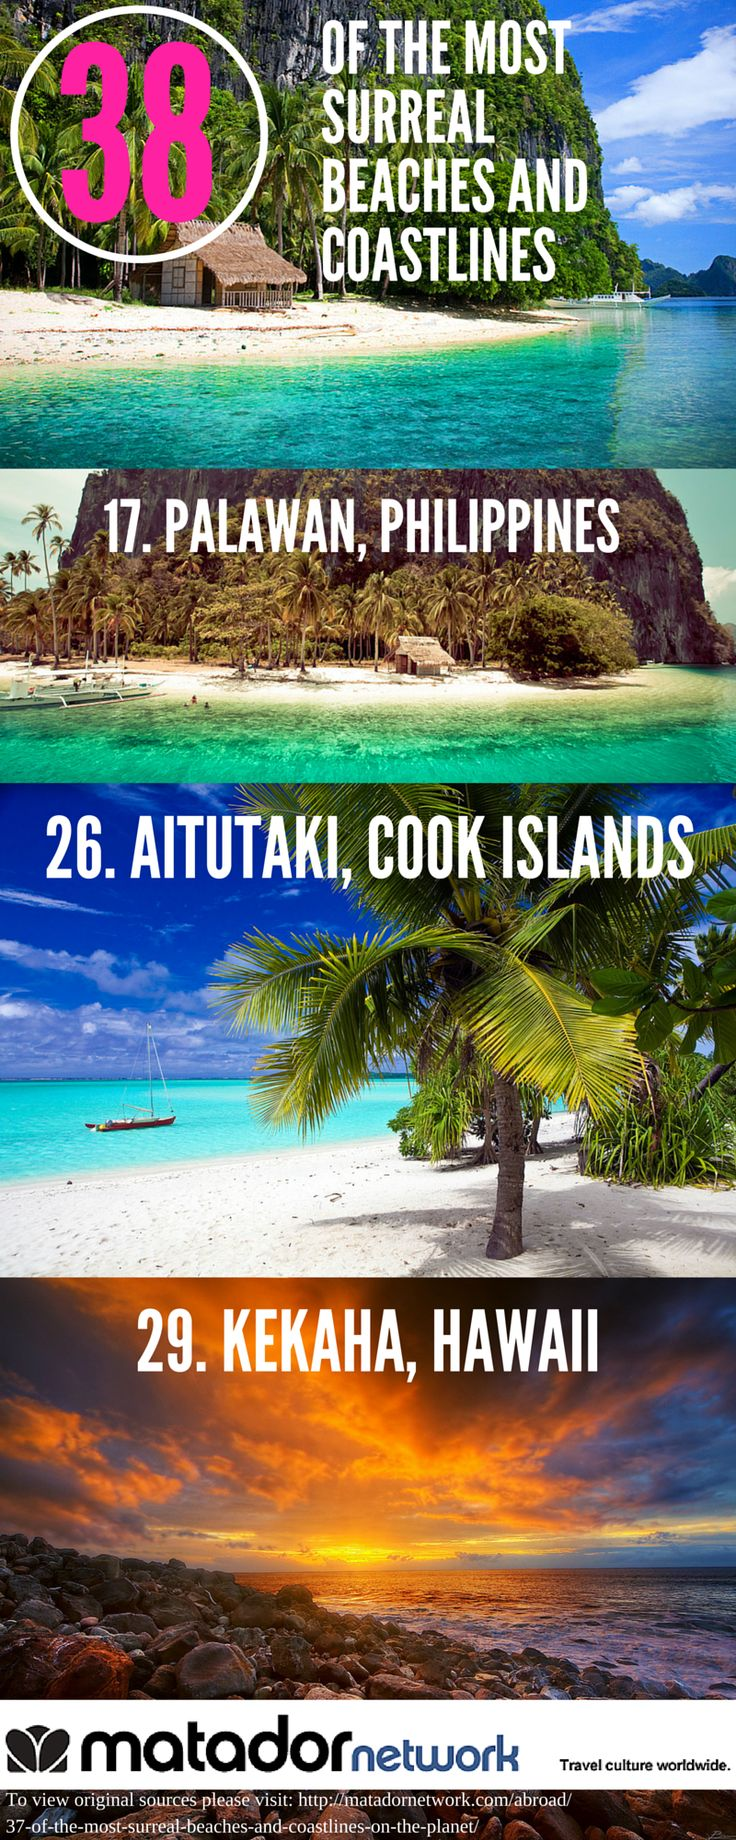 Love going to the beach? Here are 38 of the most surreal beaches and coastlines in the world, ranging from Aiututaki, Cook Islands to Kekaha, Hawaii to Corfu Island in Greece. Discover your world at MatadorNetwork.com